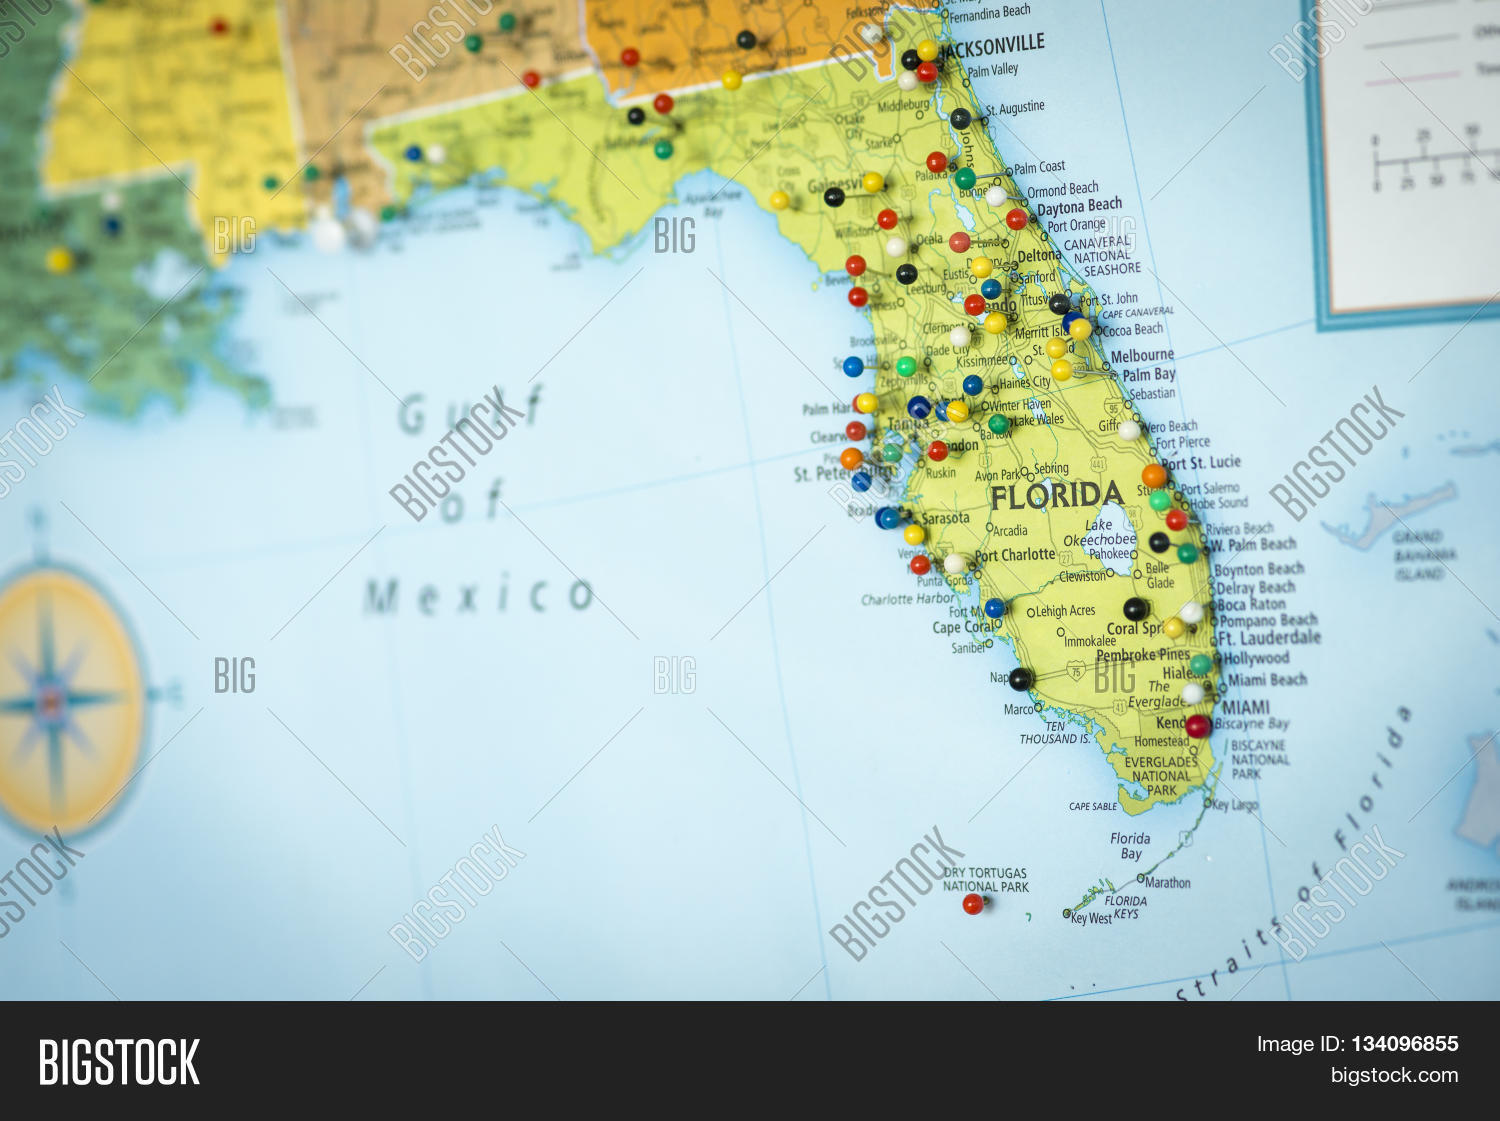 Detail Map Of Florida.Colorful Detail Map Image Photo Free Trial Bigstock